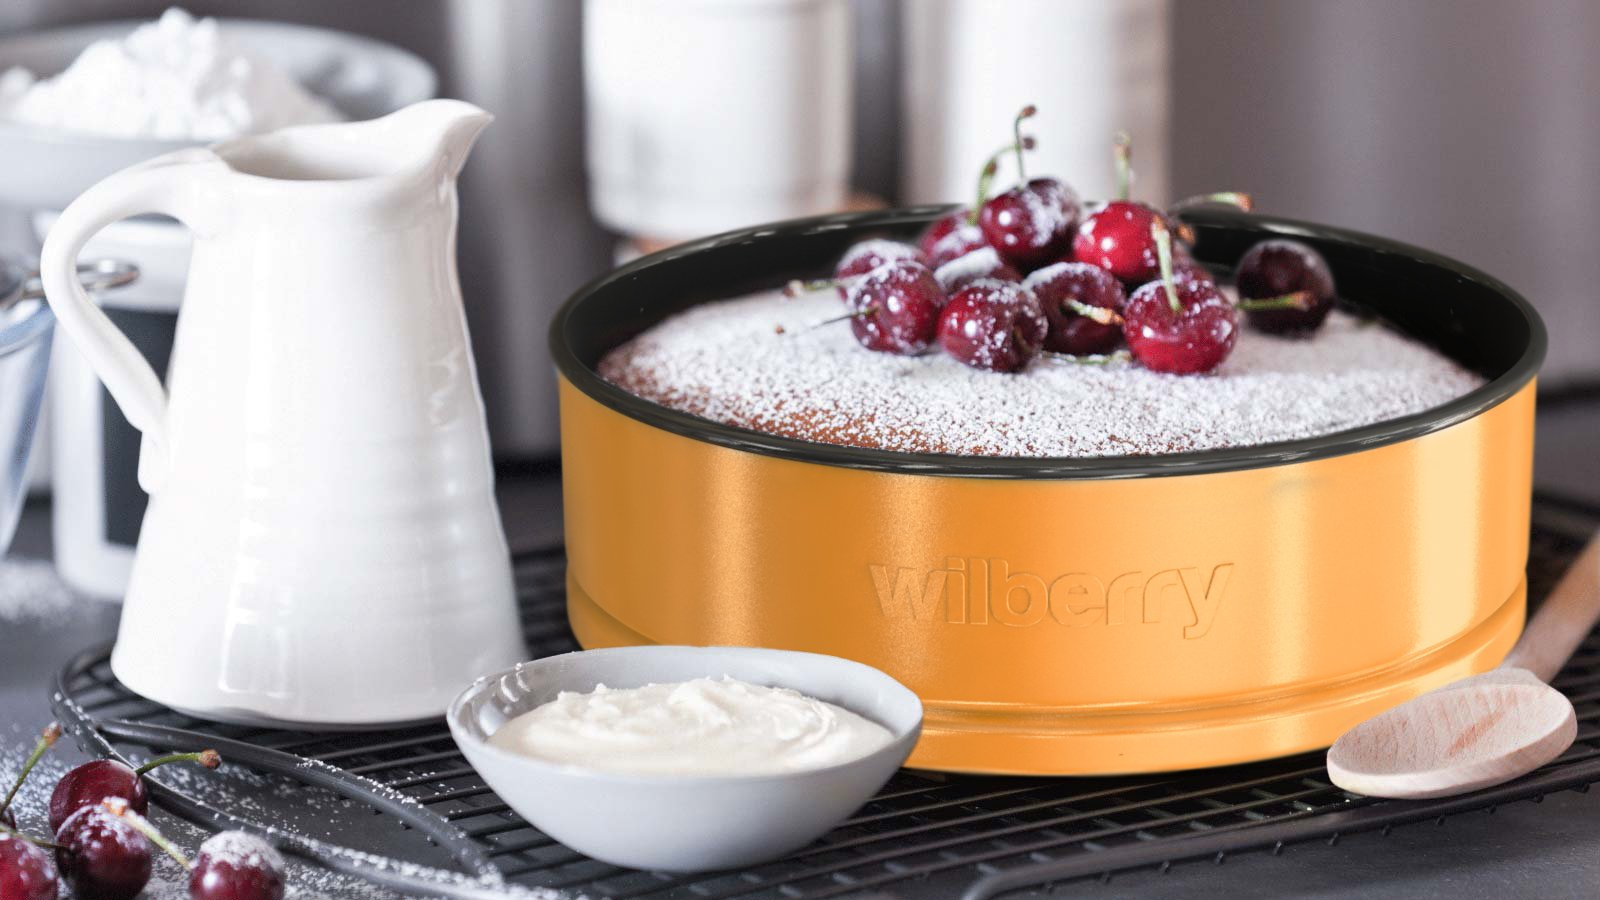 Springform Pans Set of 3   Two Round & One Heart-Shaped Cheesecake Pans   Leak Resistant & Top Rack Dishwasher Safe by Wilberry (Image #3)